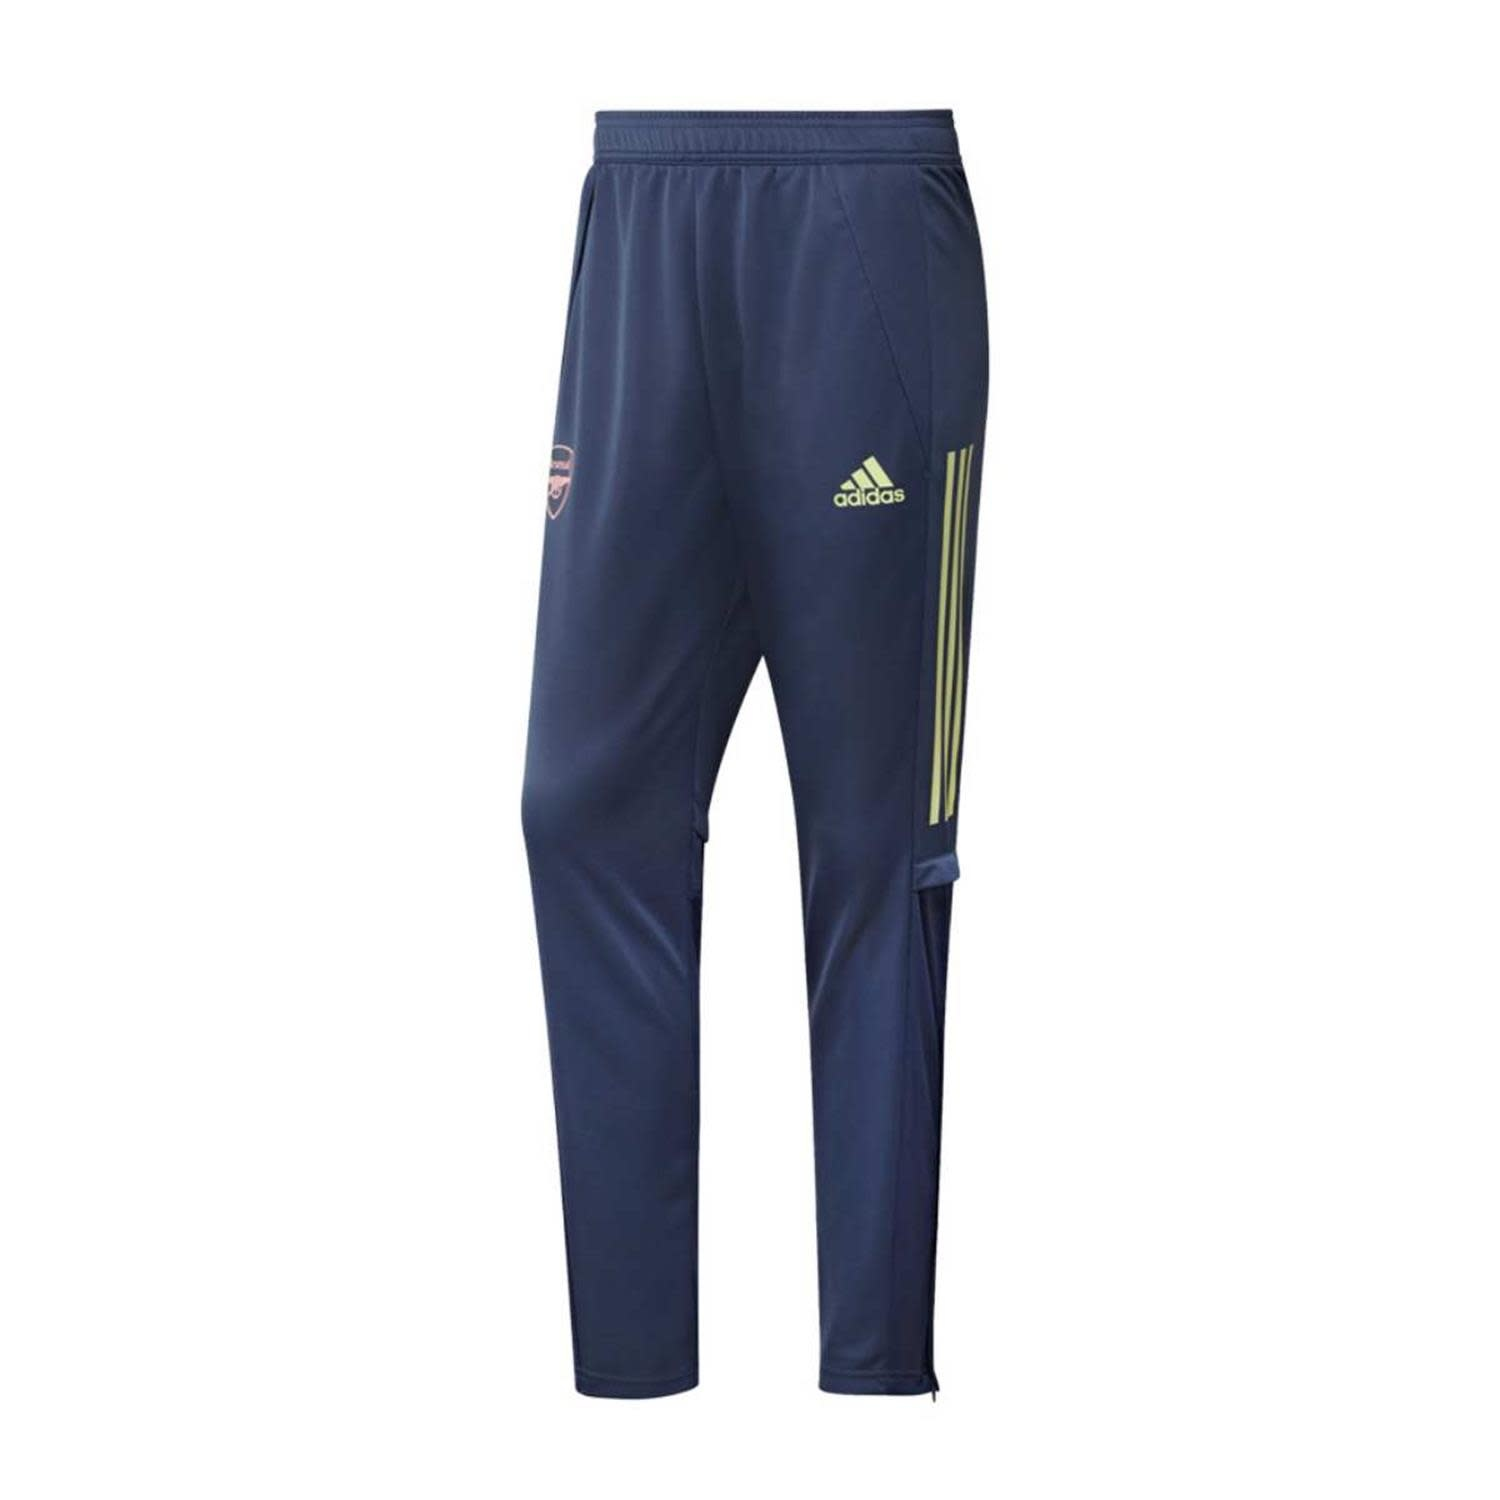 Adidas ADIDAS Arsenal Training Pant '20-'21